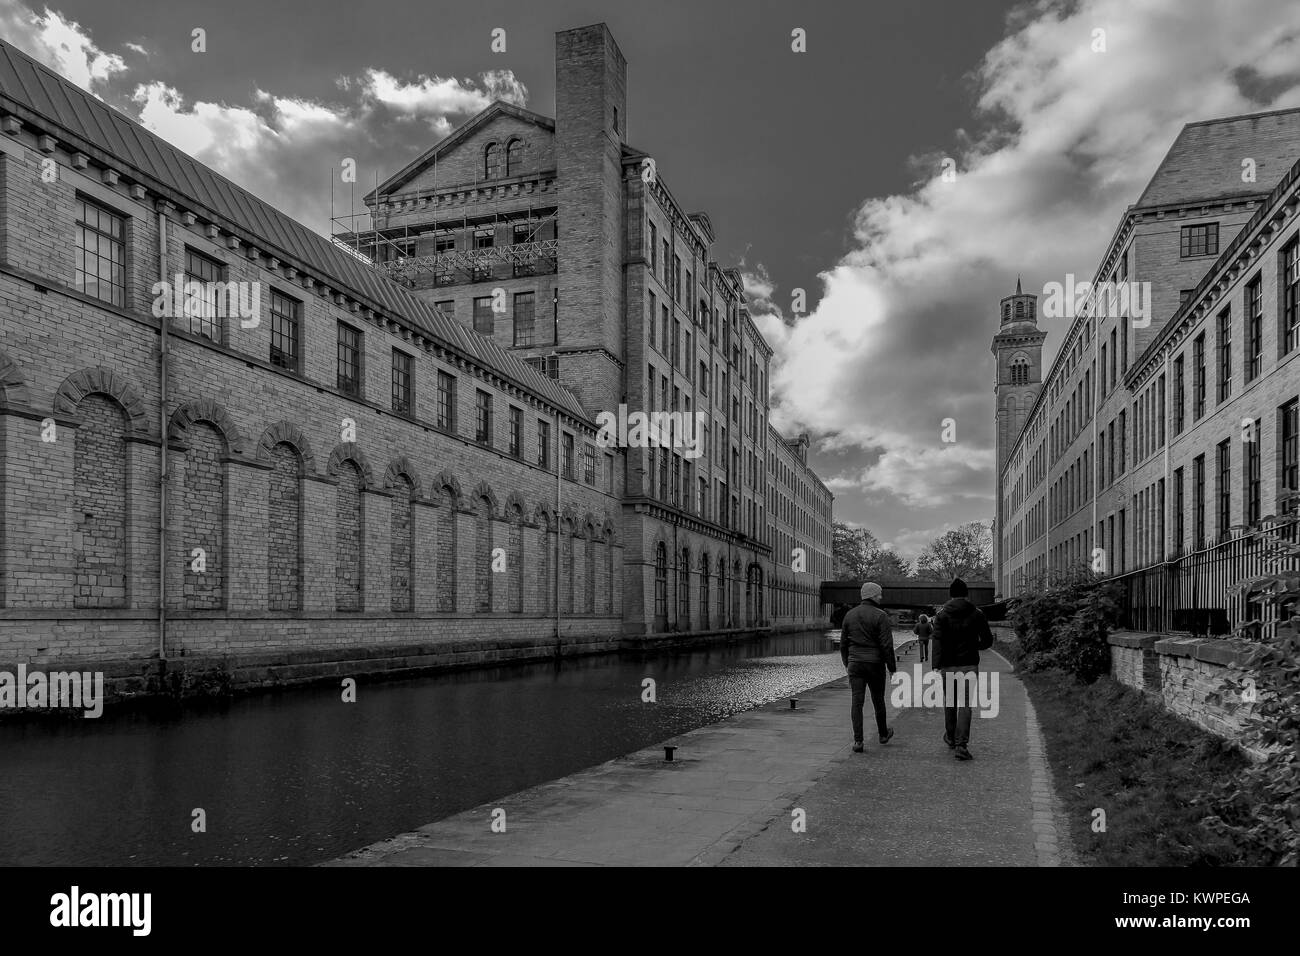 Monochrome. Salts Mill in Saltaire, a world heritage site in West Yorkshire. The Leeds Liverpool canal runs inbetween - Stock Image